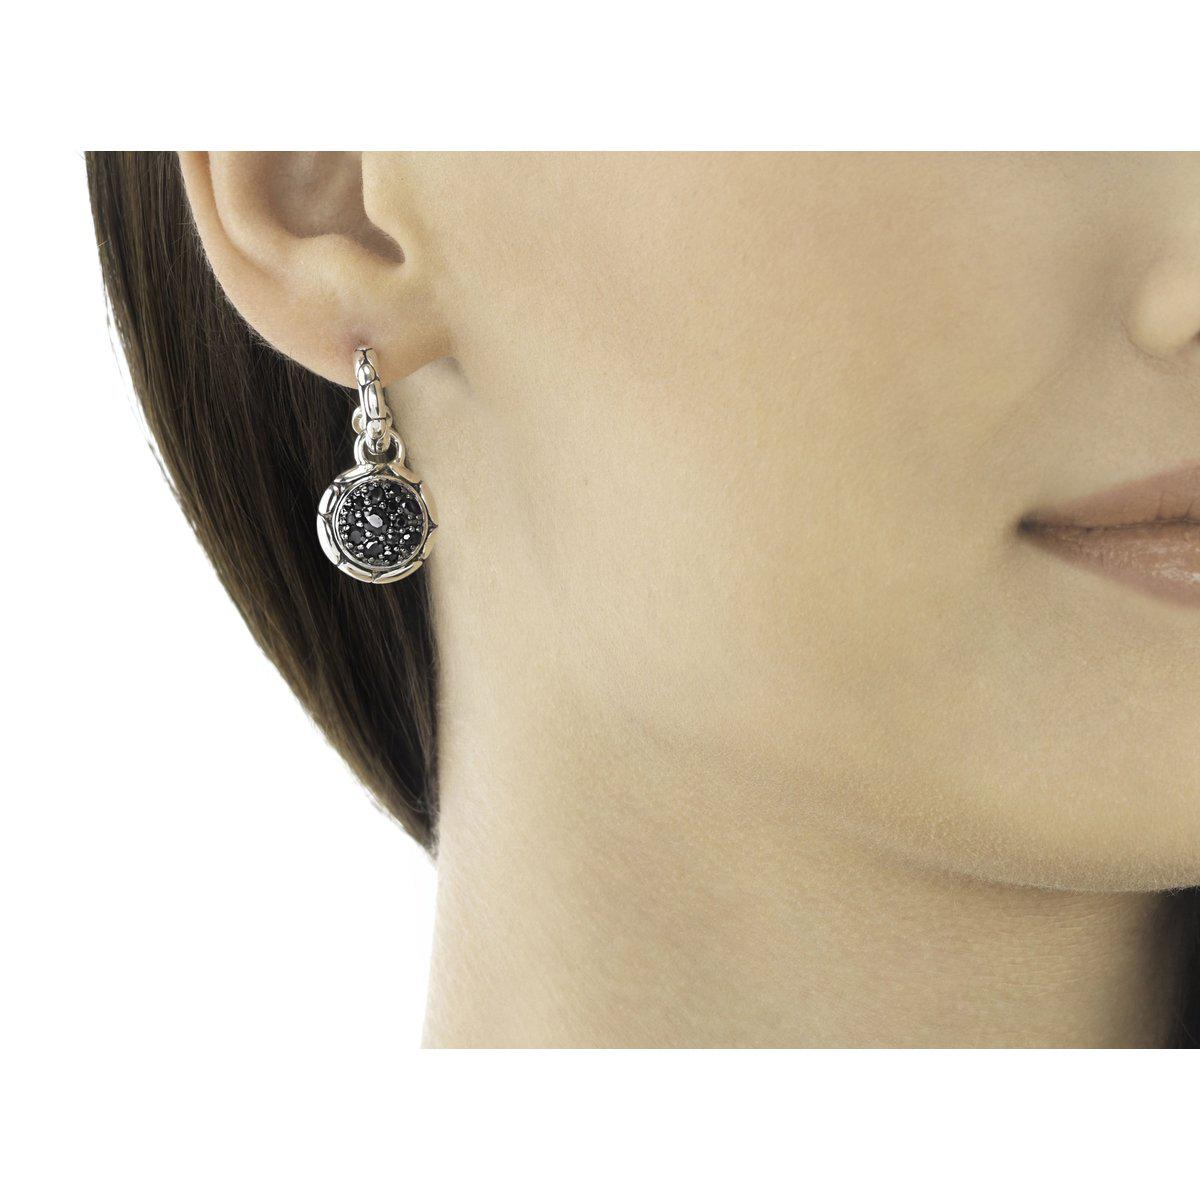 Kali Extra Small Drop Earring with Black Sapphire - EBS20257BLS-John Hardy-Renee Taylor Gallery